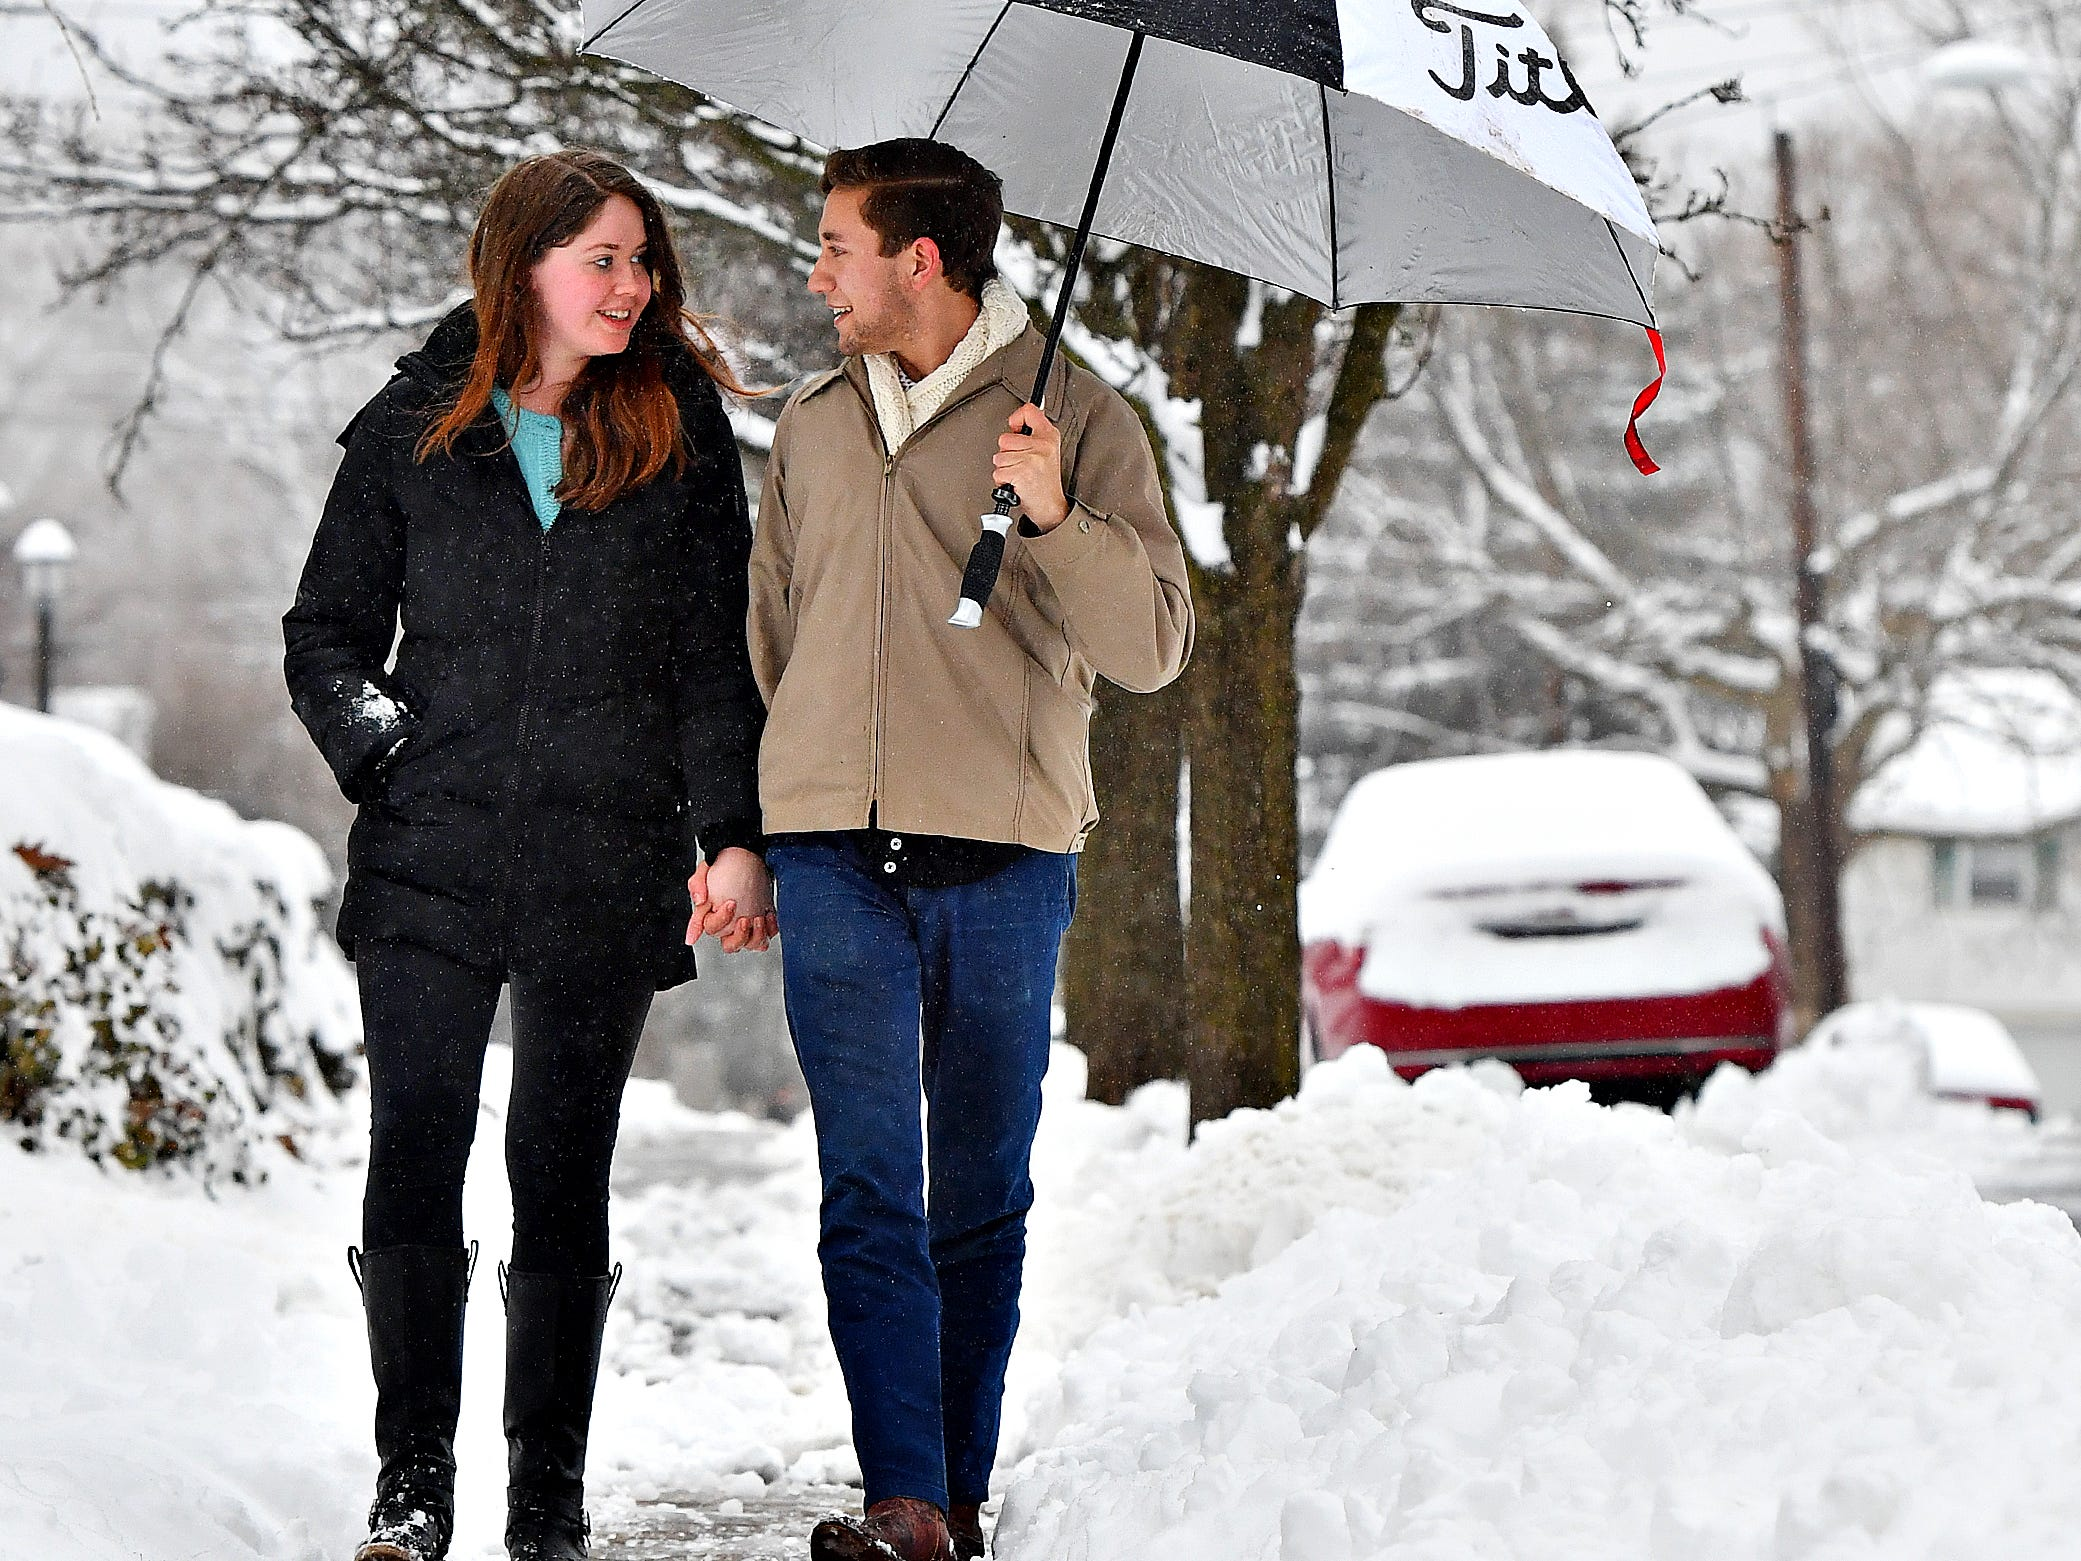 Ashton Howe, right, and Charli Muszynski, of Springettsbury Township, walk hand in hand while sharing an umbrella in the rain on North Keesey Street in Springettsbury Township, Wednesday, Feb. 20, 2019. Dawn J. Sagert photo